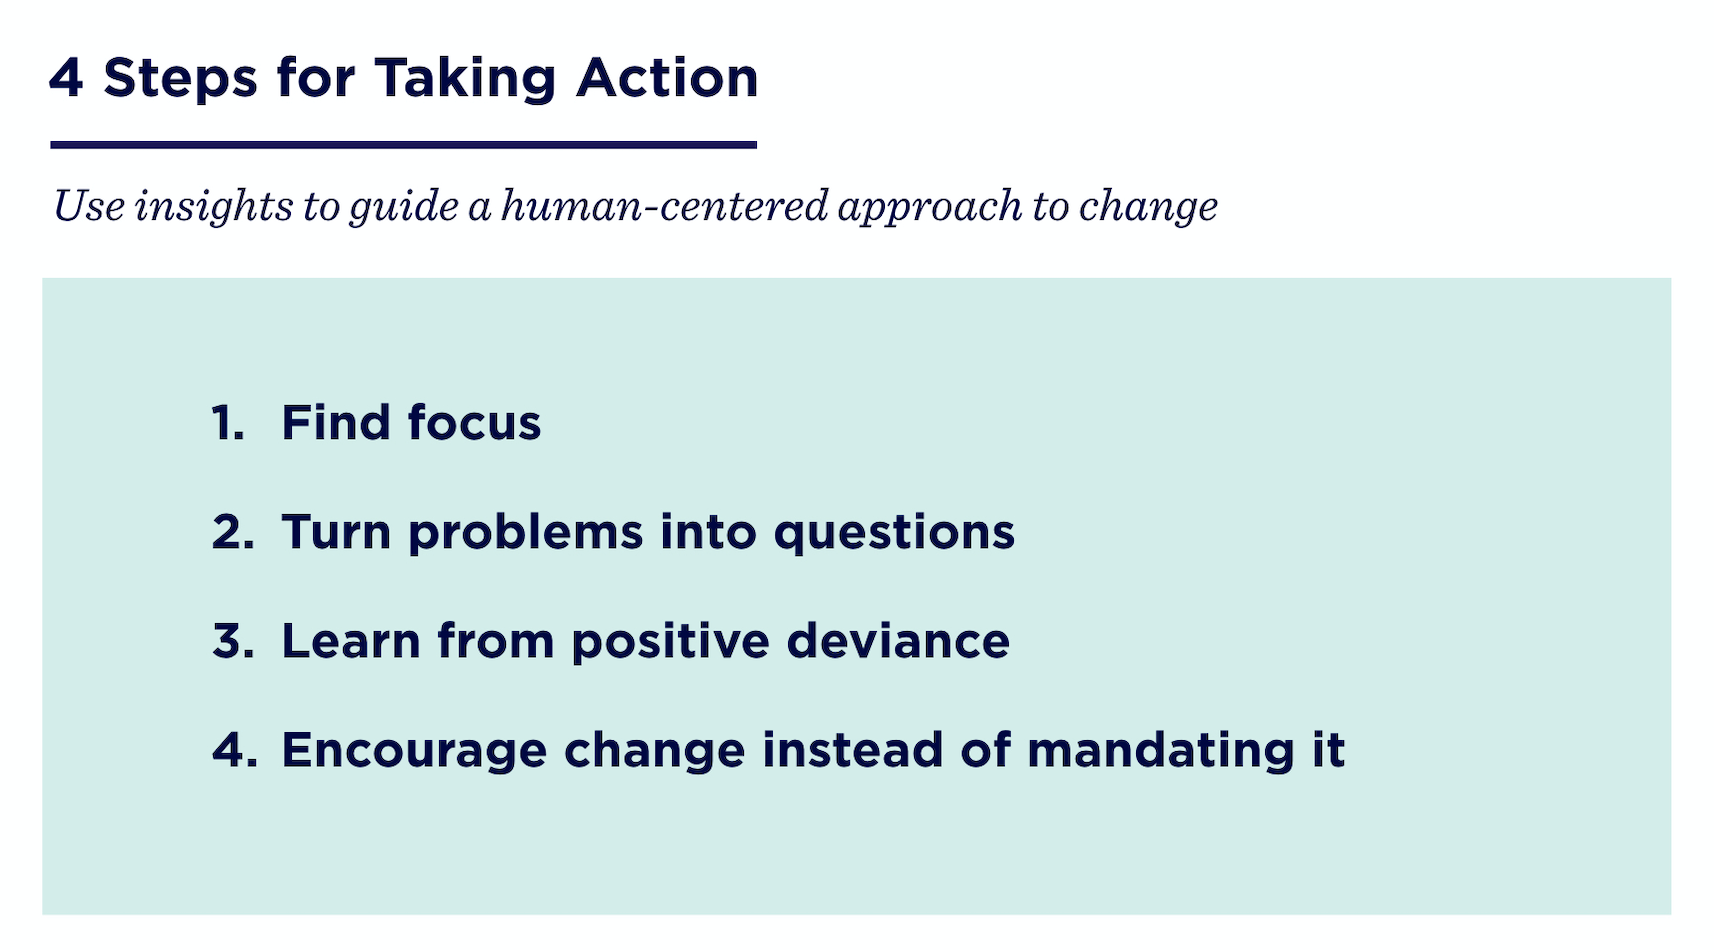 4 steps for taking action